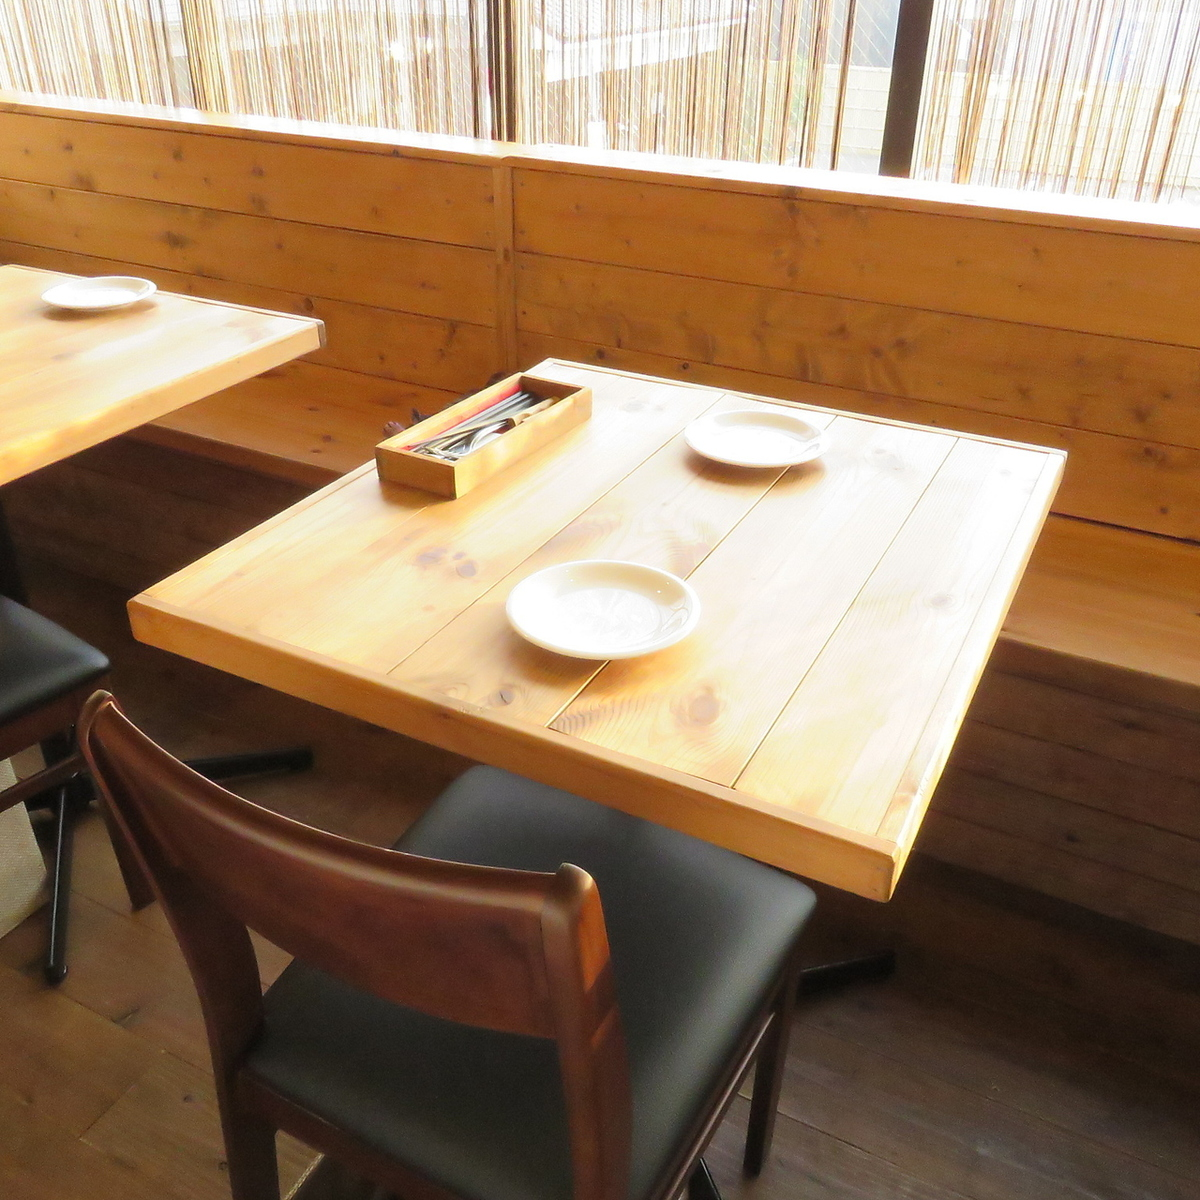 【2 people table】 Table seats with a feeling of release change expressions day and night.It is a table that can be used by a large number of people connecting from two people.